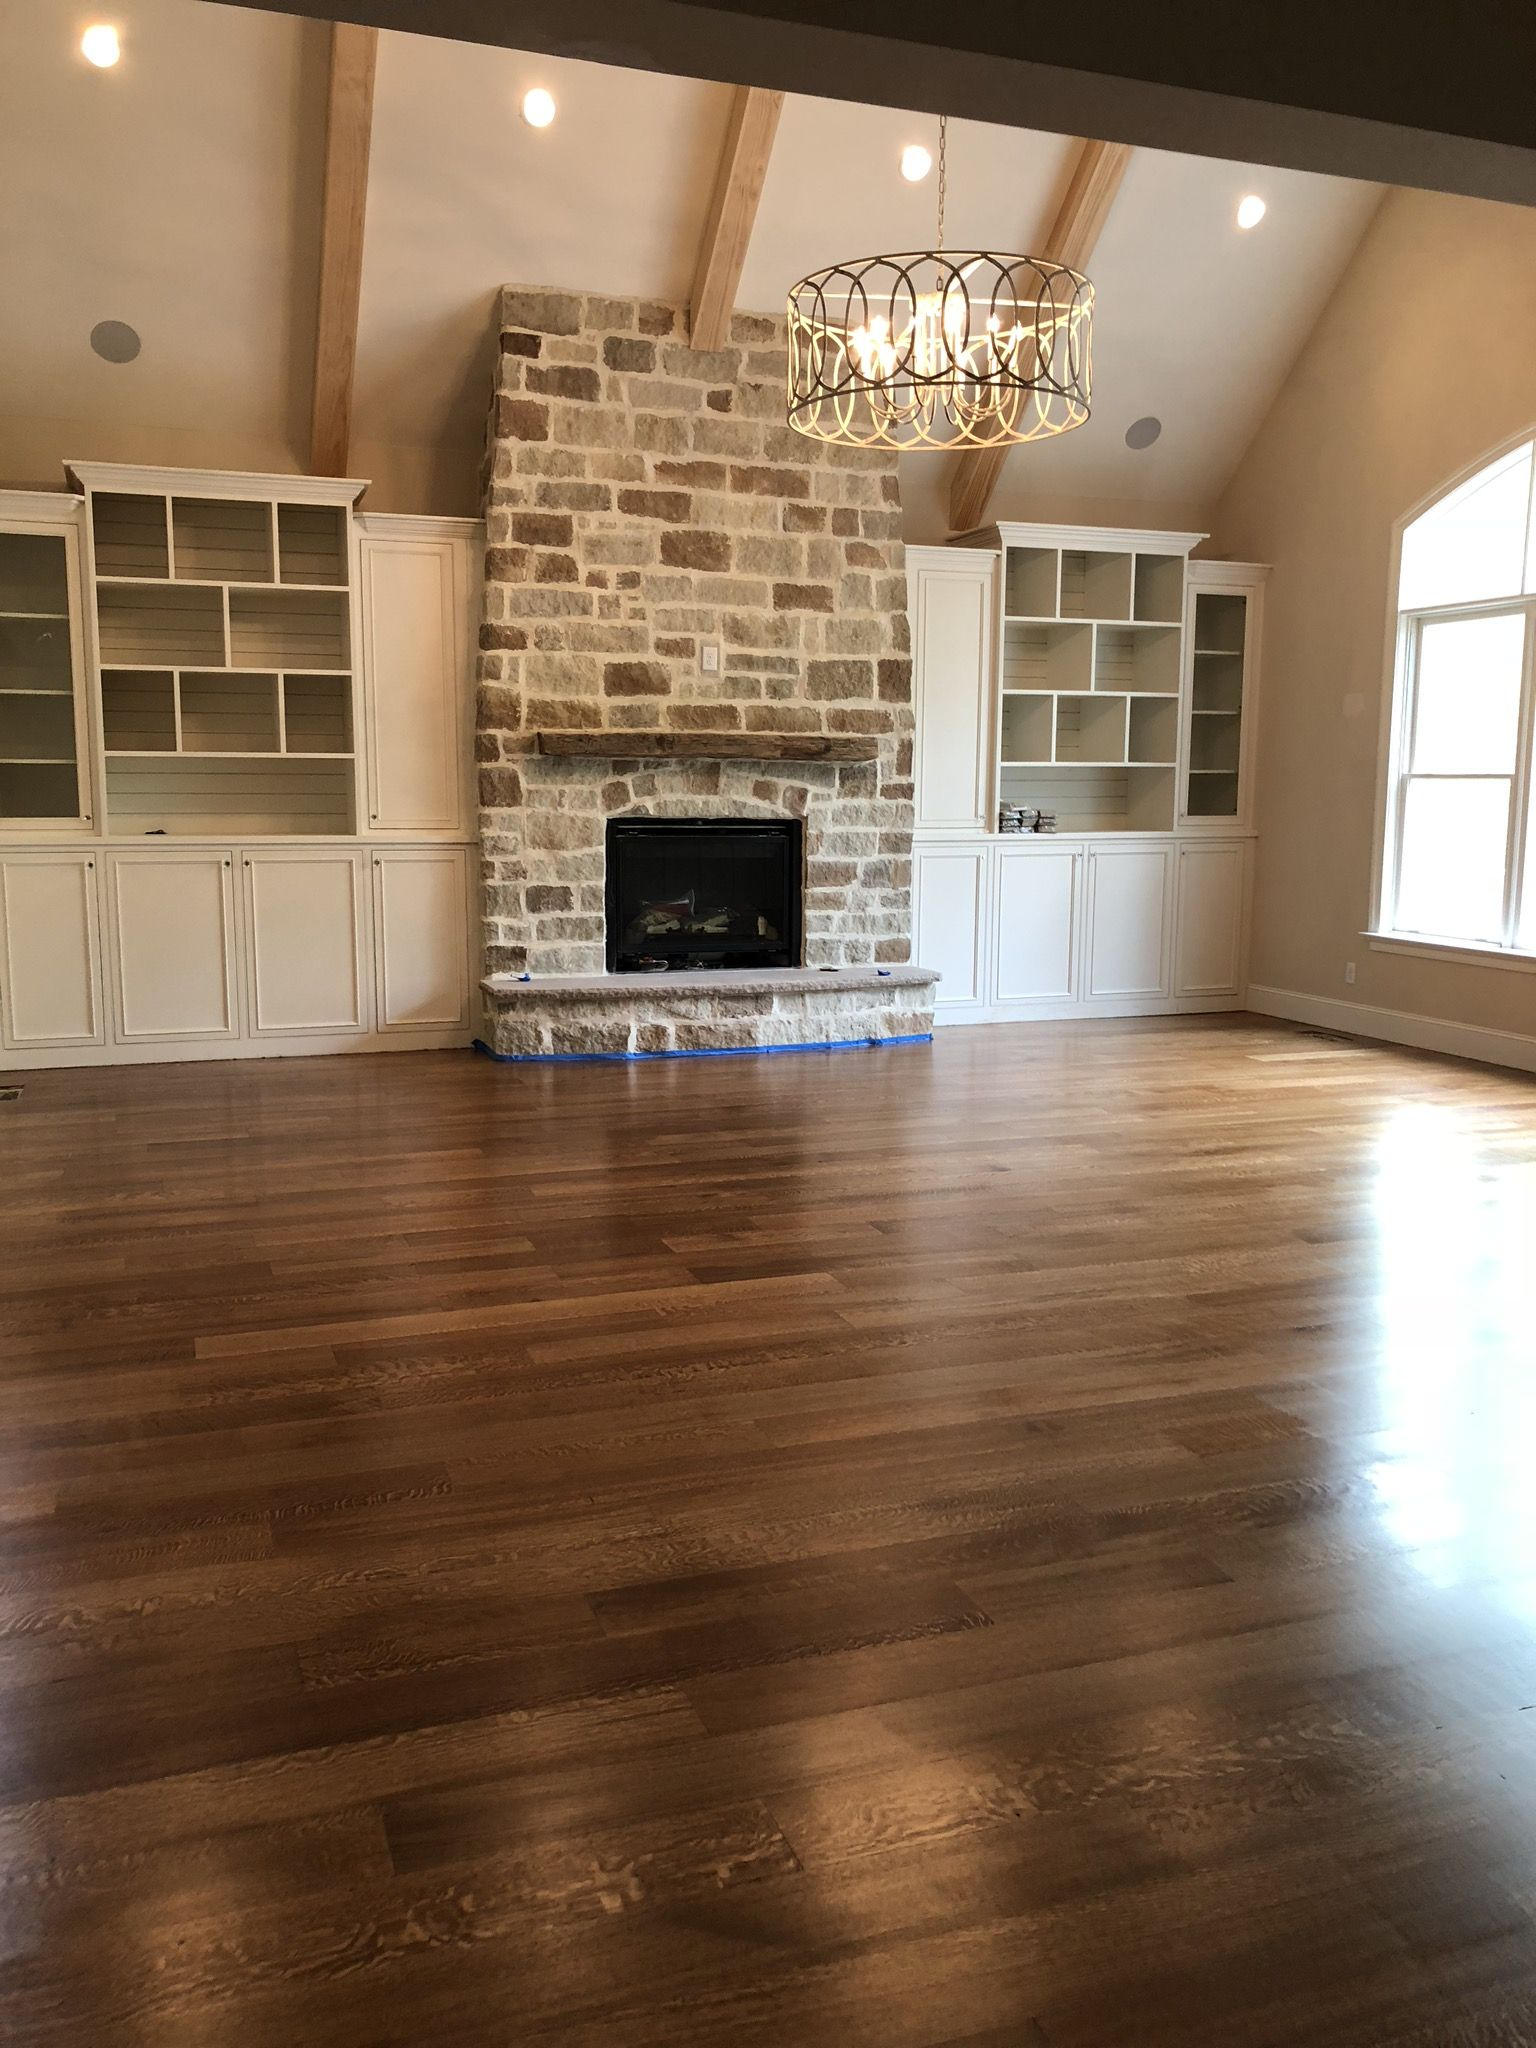 Wood Floor Is Quarter Sawn Character Grade 7 White Oak Stained With A 50 50 Mix Wood Floors Wide Plank White Oak Hardwood Floors Wide Plank White Oak Floors